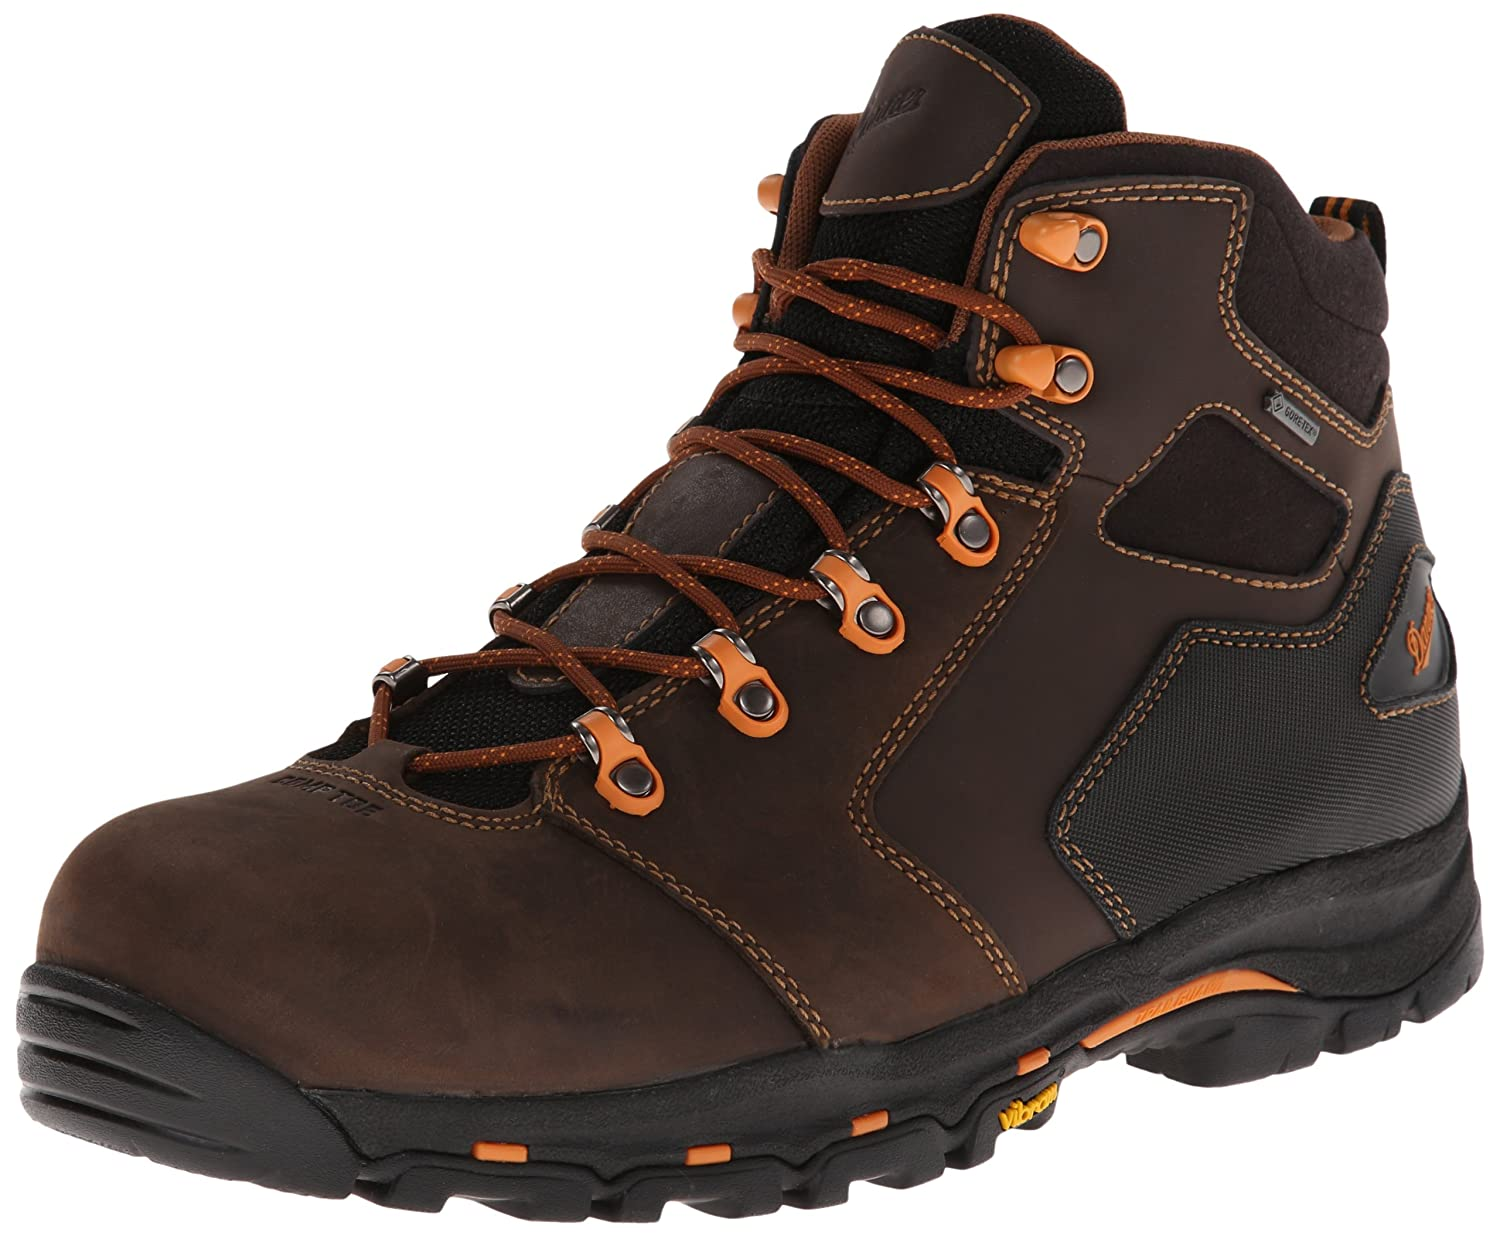 Amazon.com: Danner Men&39s Vicious 4.5 Inch Non Metallic Toe Work